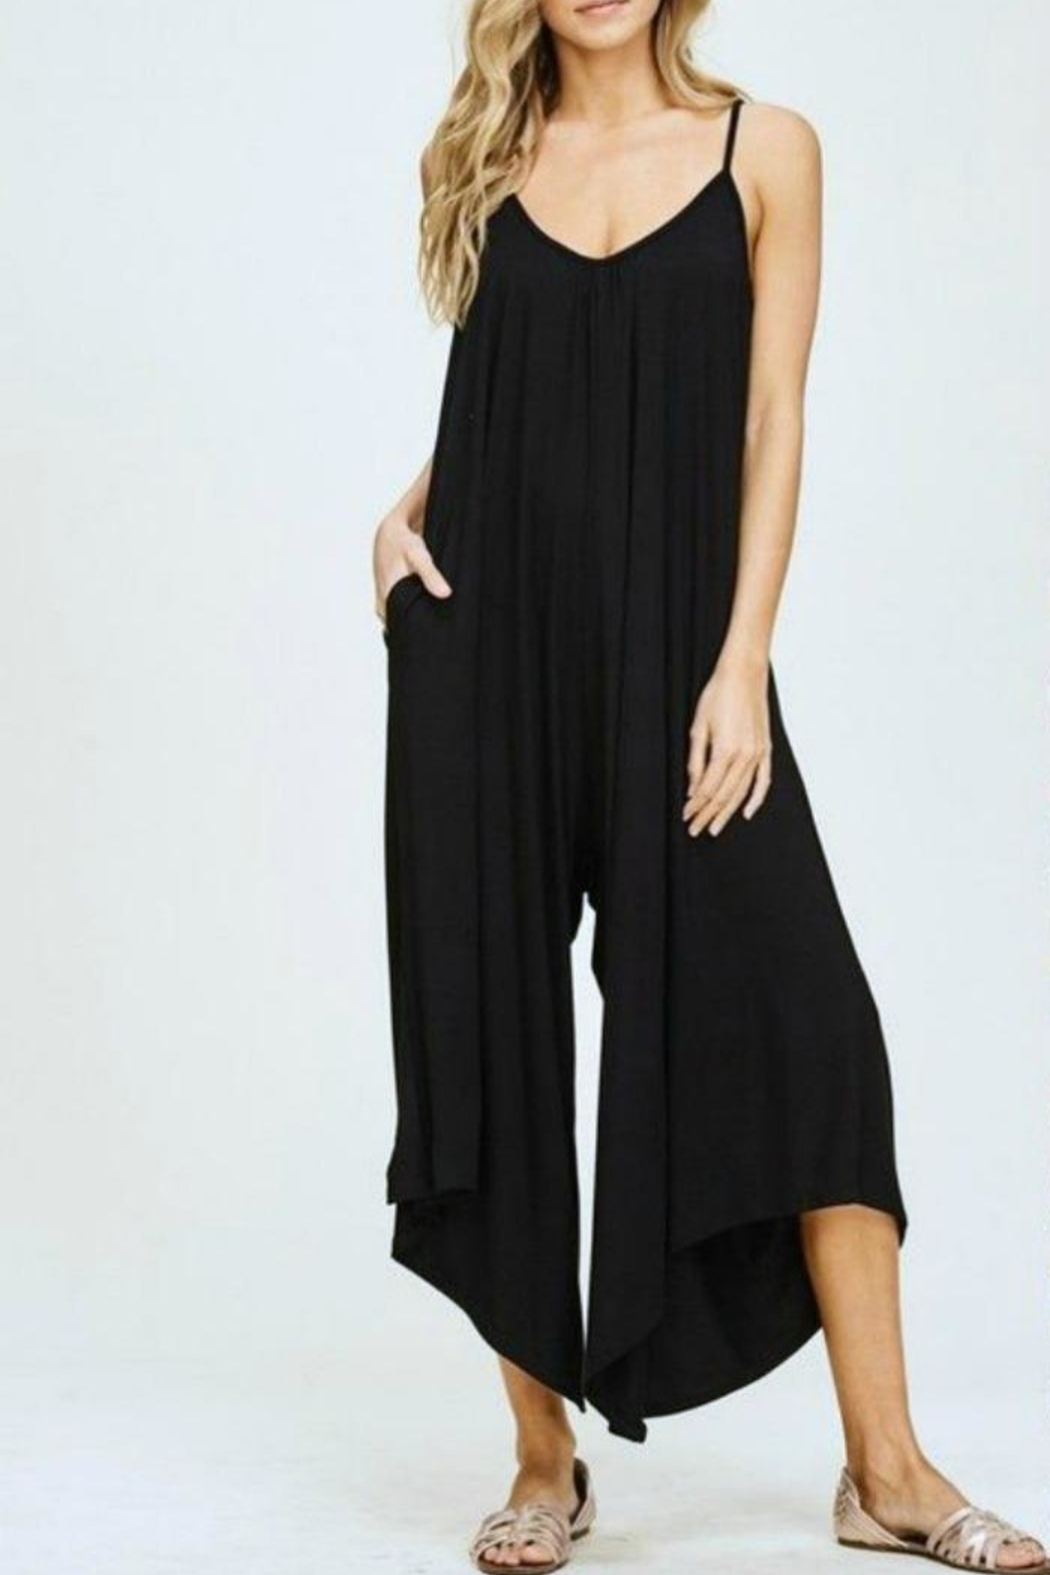 Simply Chic Black Knit Jumpsuit - Main Image